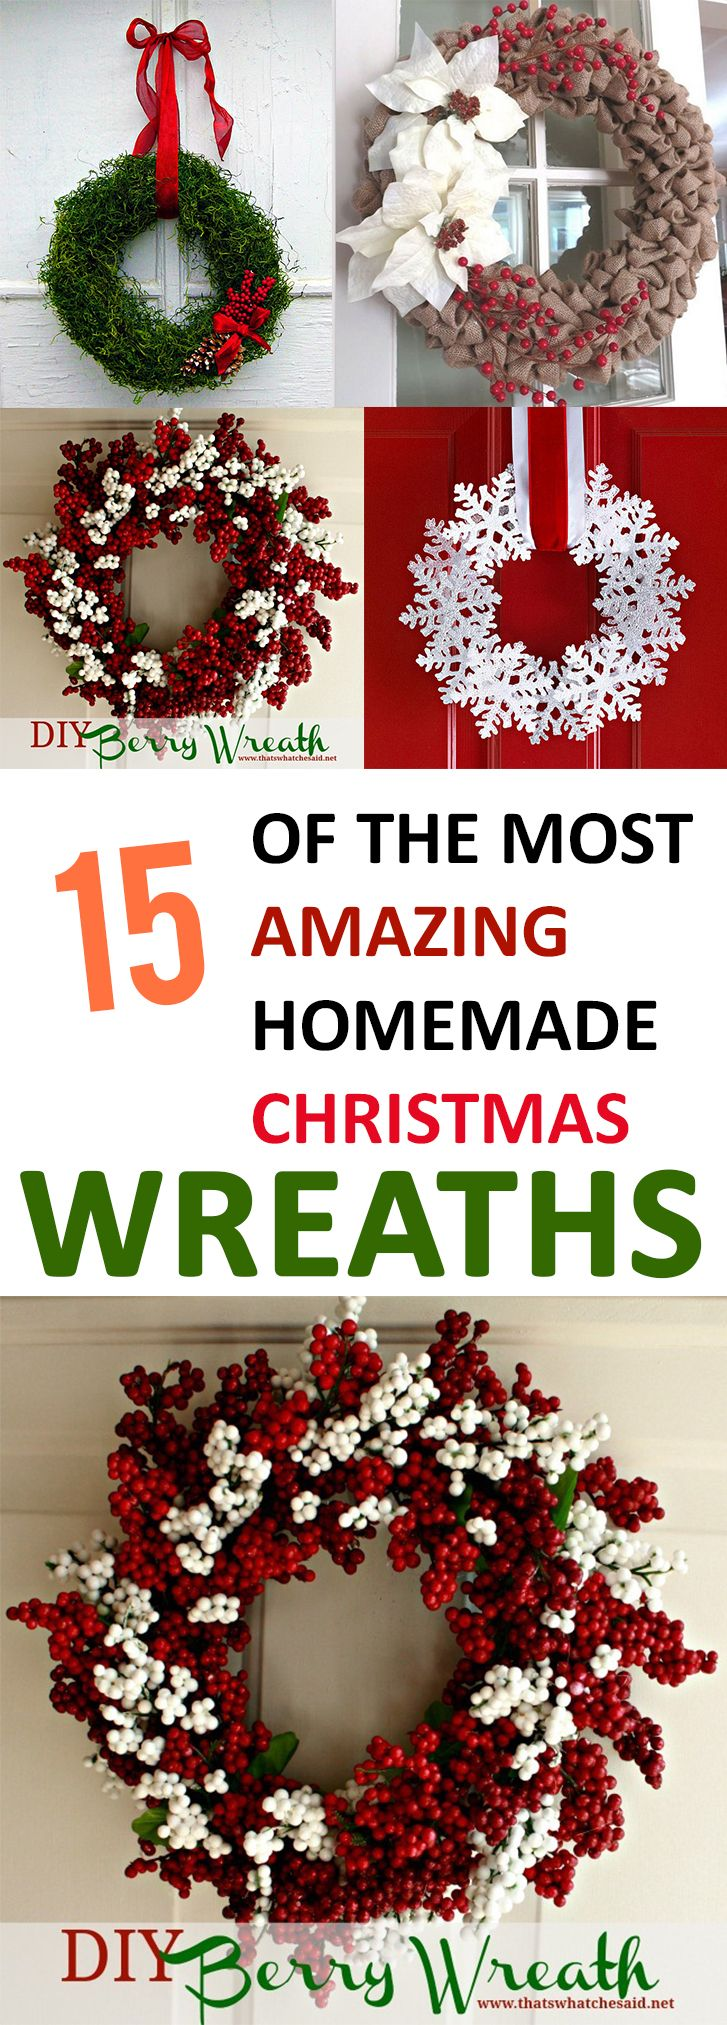 15-of-the-Most-Amazing-Homemade-Christmas-Wreaths2-1.jpg 727×2,025 pixeles